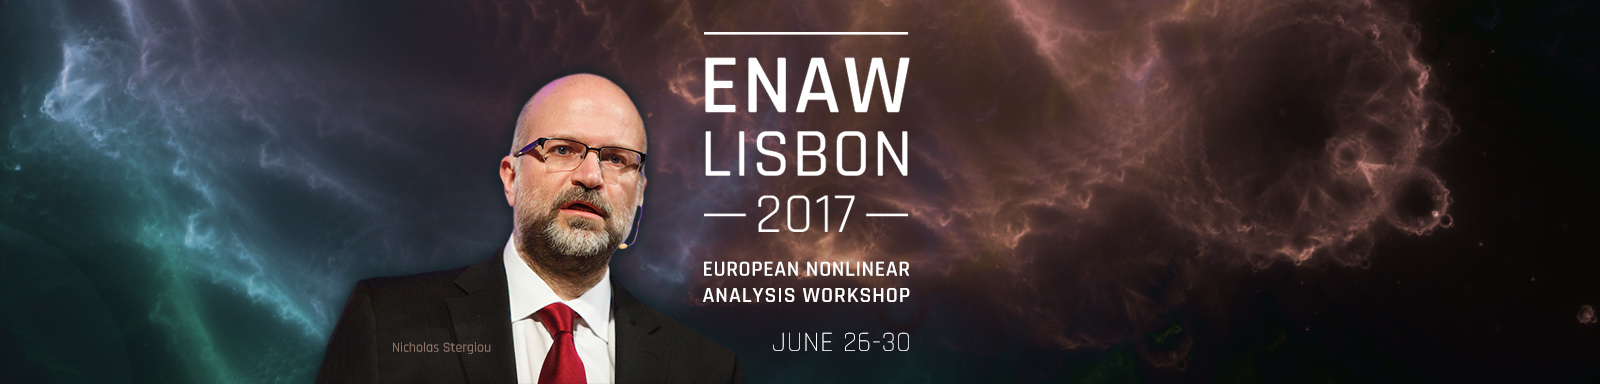 ENAW Lisbon 2017 - European Nonlinear Analysis Workshop